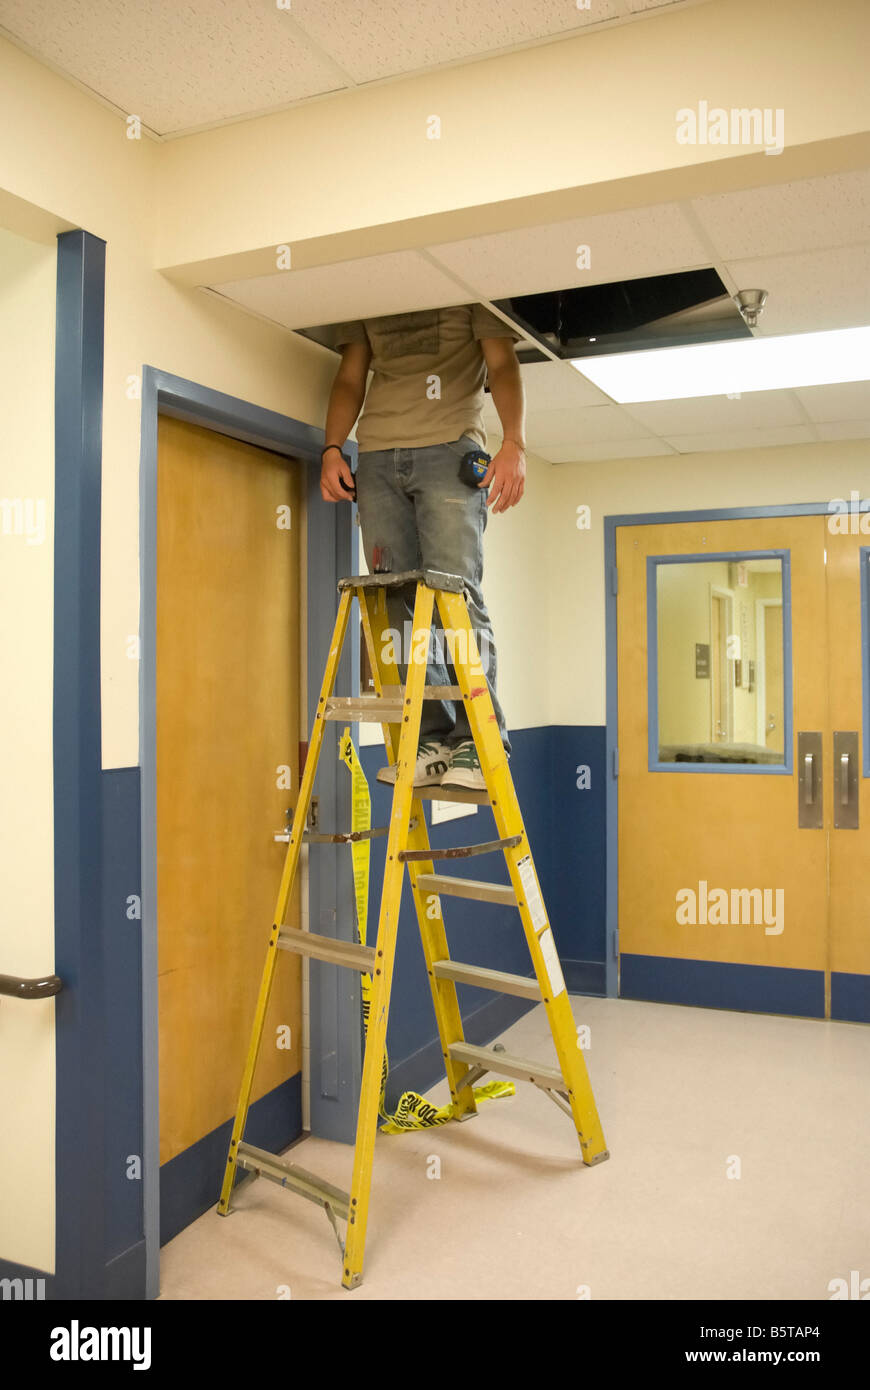 Man Working On Ladder Fixing Ceiling Stock Photo 20818956